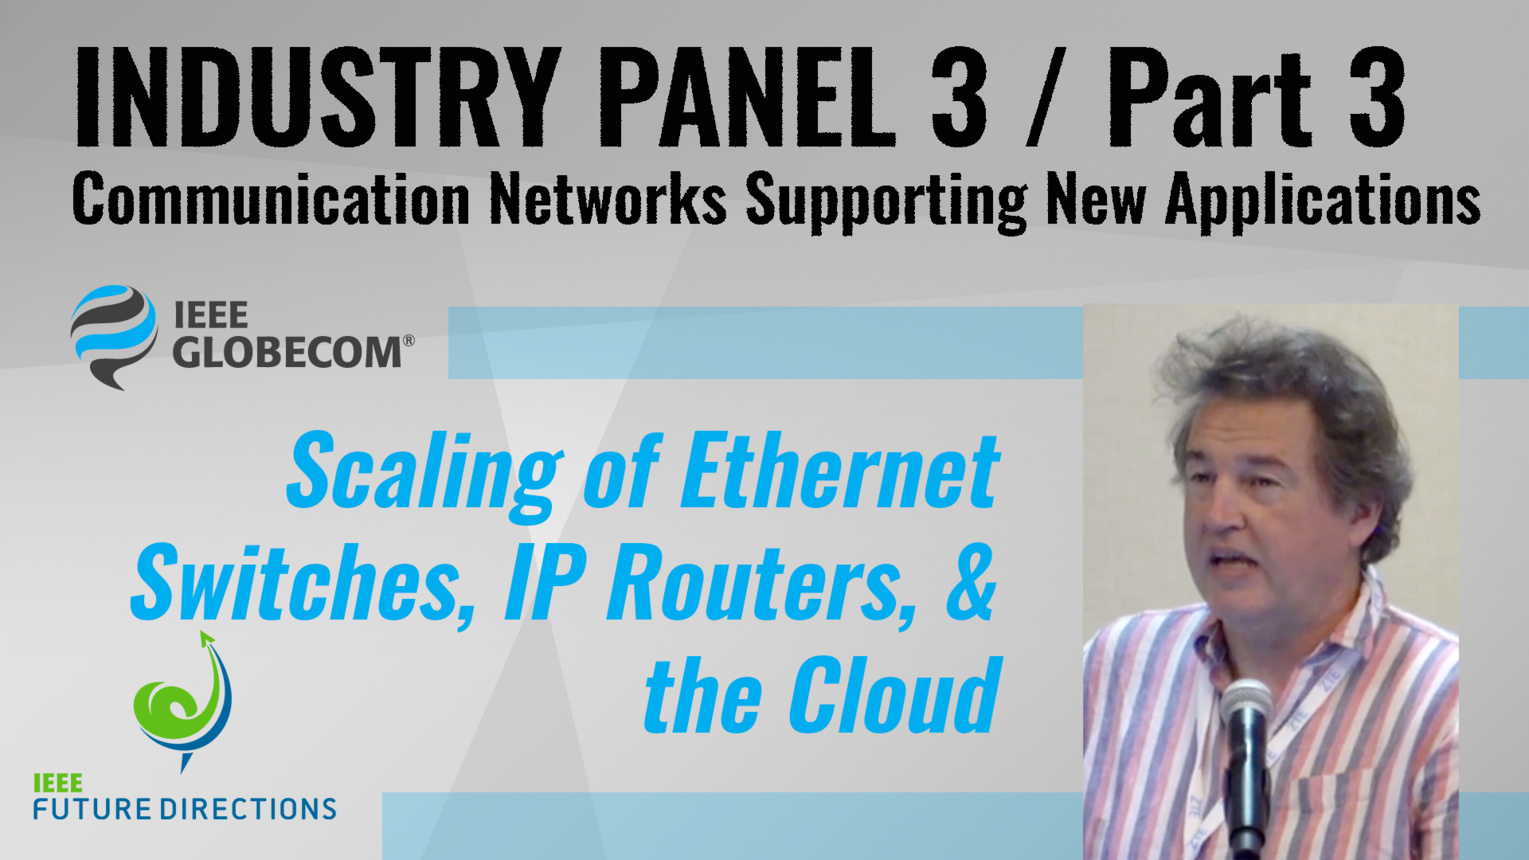 Pt. 3: Scaling of Ethernet Switches, IP Routers, & the Cloud - David Neilson - Industry Panel 3, IEEE Globecom, 2019